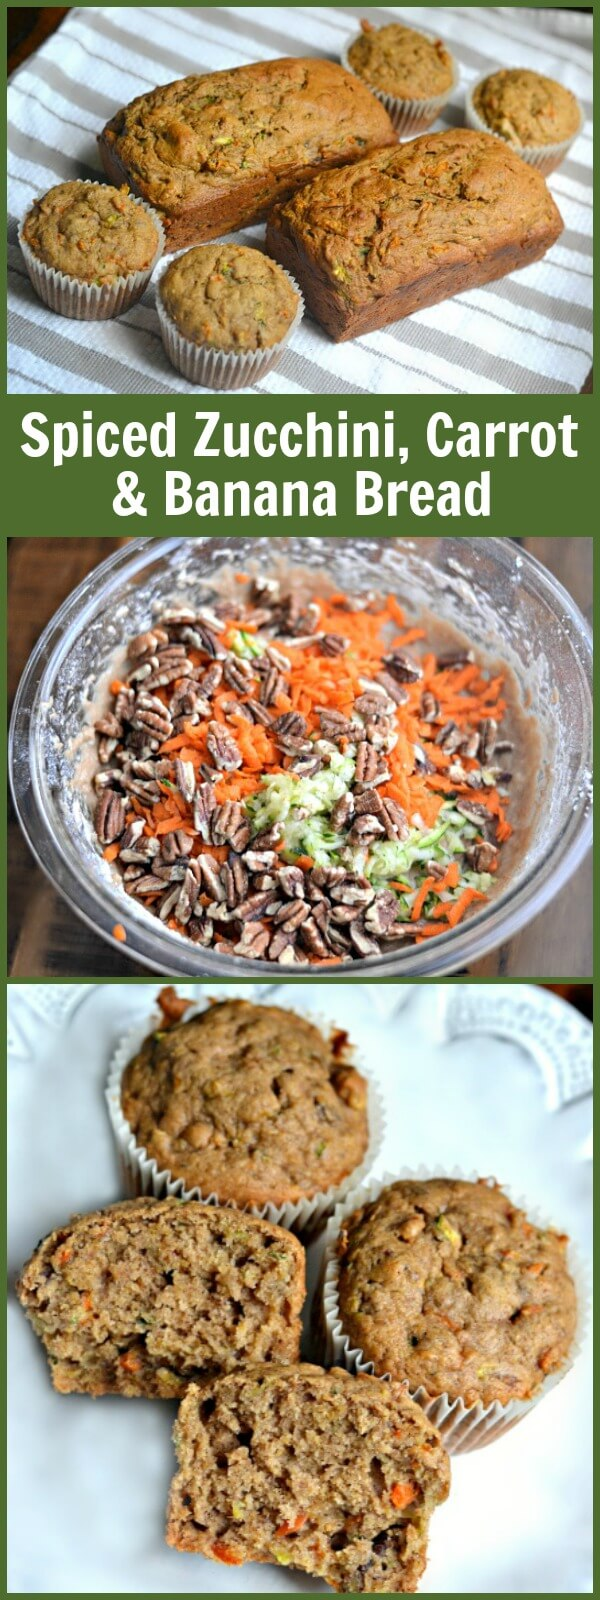 Spiced Zucchini, Carrot and Banana Bread or Muffins